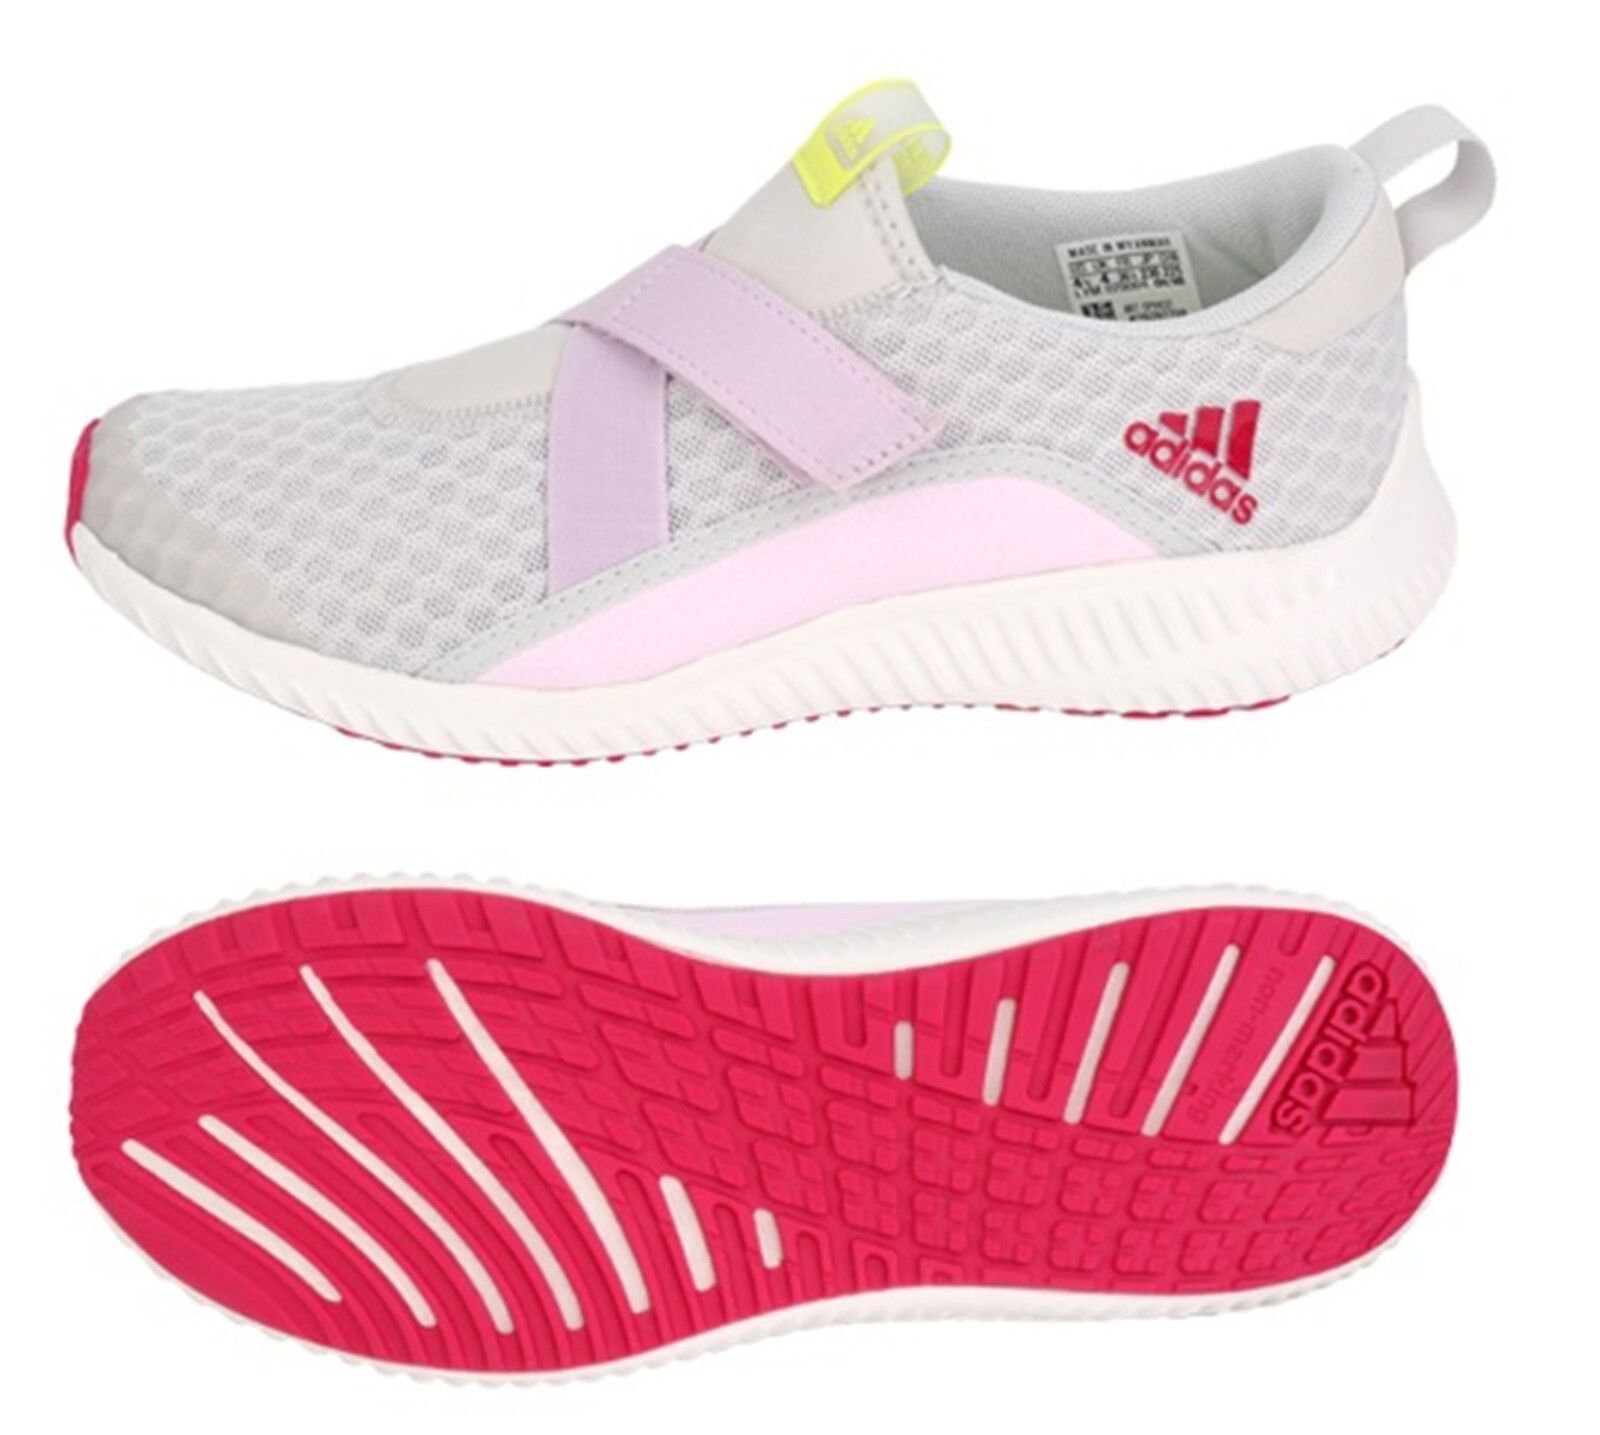 Adidas Women ForaRun X Cool CF shoes Running Pink Casual  Sneakers shoes CP9432  great offers